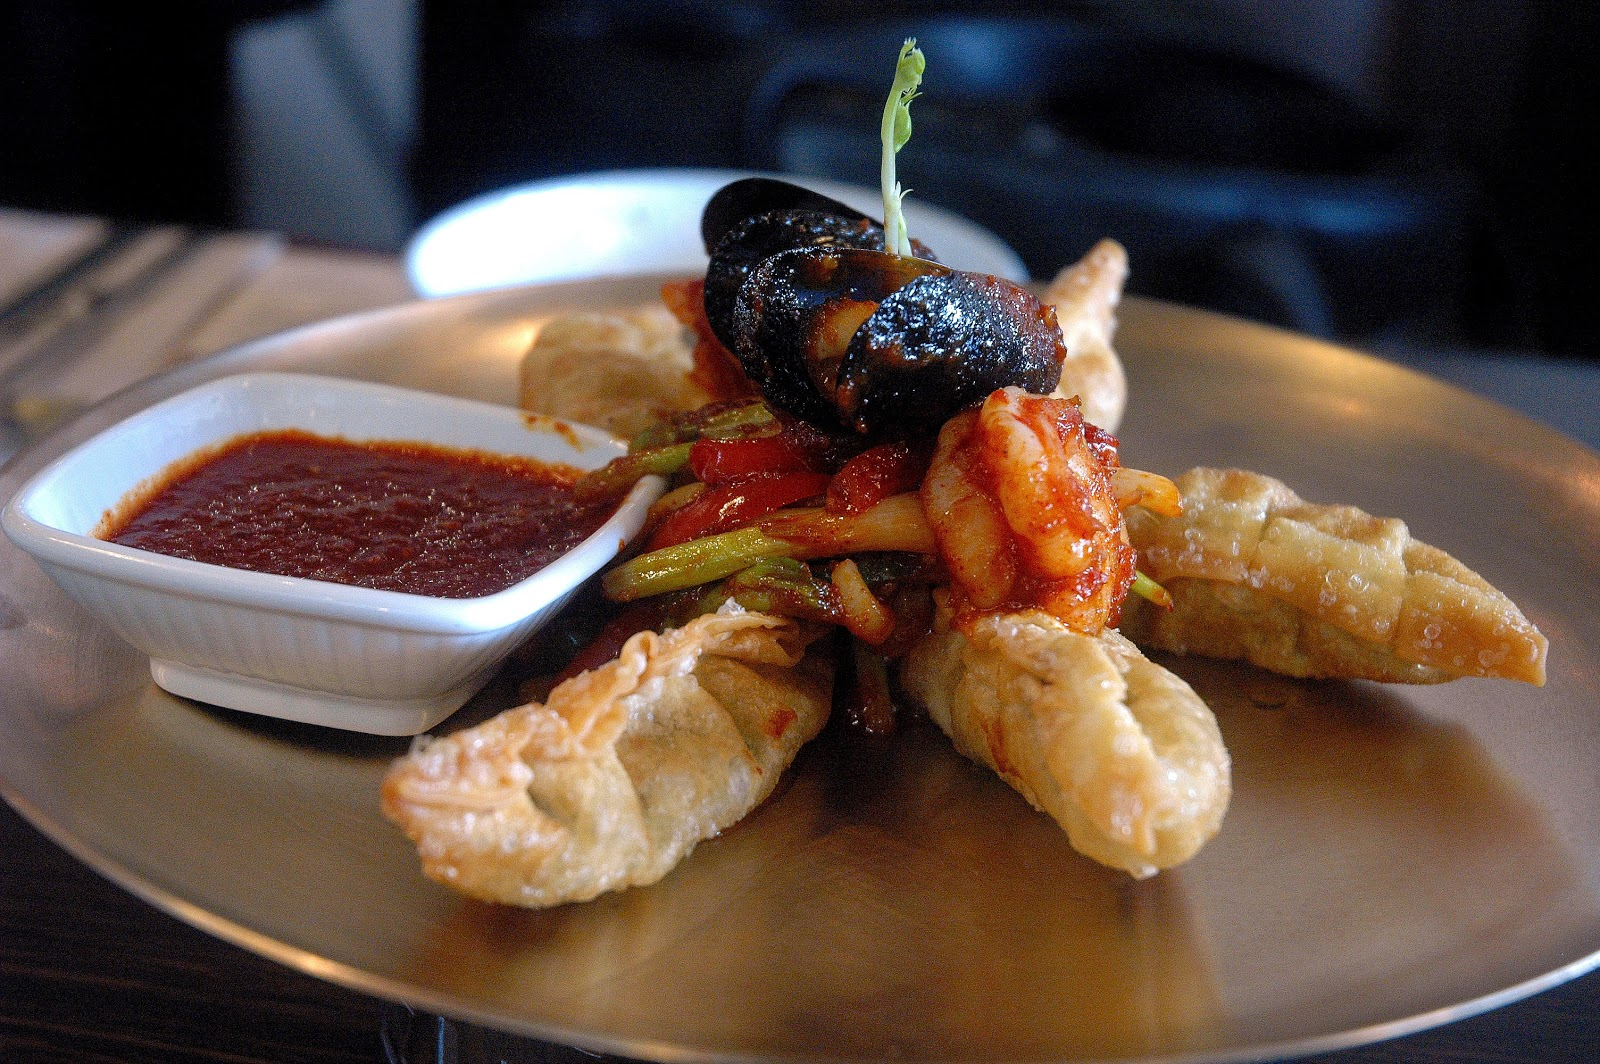 dumplings topped with spicy mussels, shrimp, squid and a spicy dip